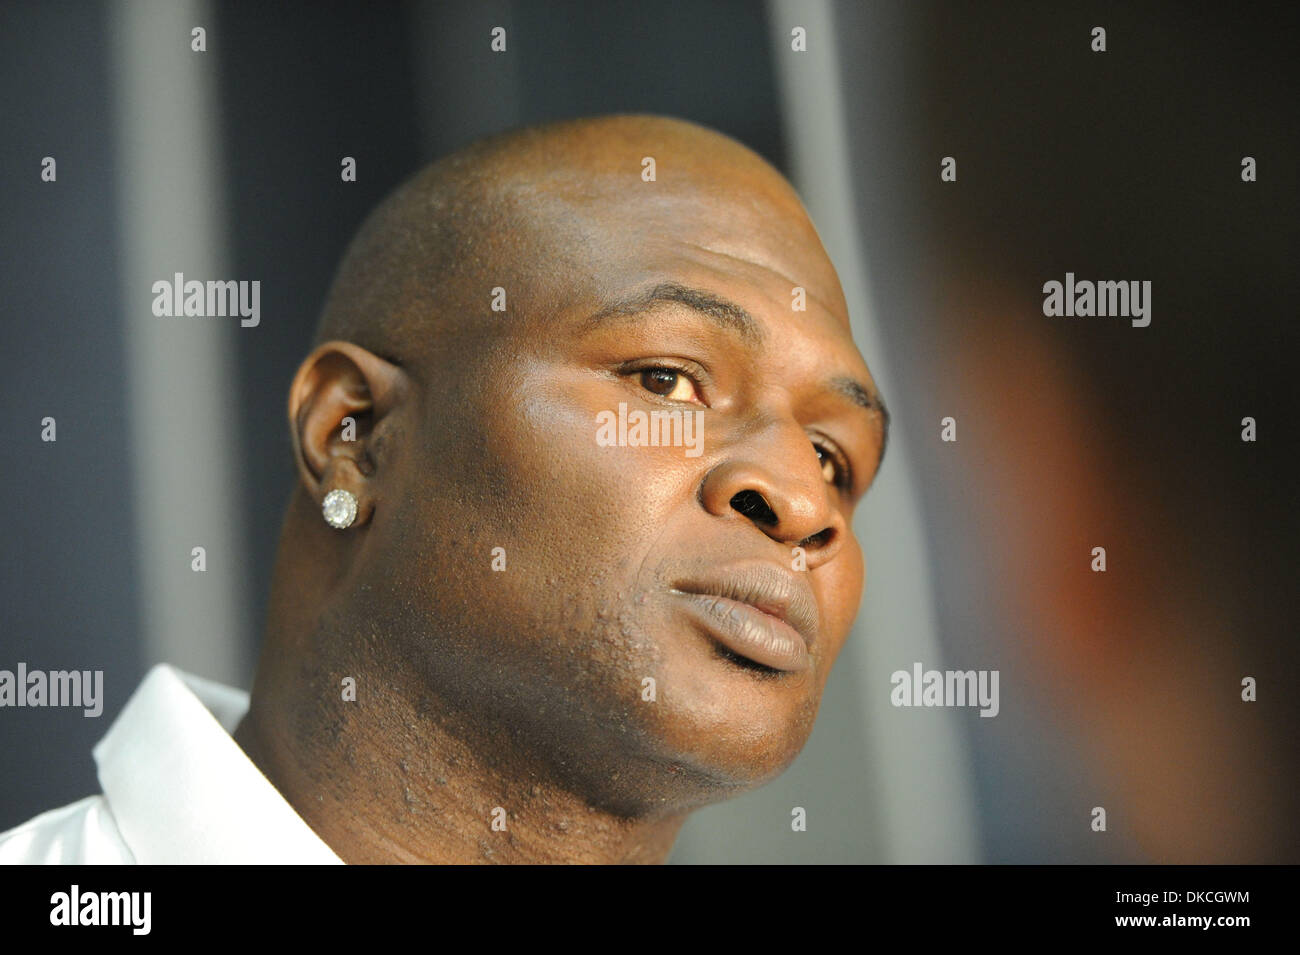 Sep. 22, 2011 - Moscow, Russia - American professional boxer JAMES TONEY at Agalarov residence of Moscow to promote his fight vs Russia's boxer D. Lebedev. James Toney is back in the combat sport and will fight Lebedev on November 4, 2011. (Credit Image: © PhotoXpress/ZUMAPRESS.com) - Stock Image